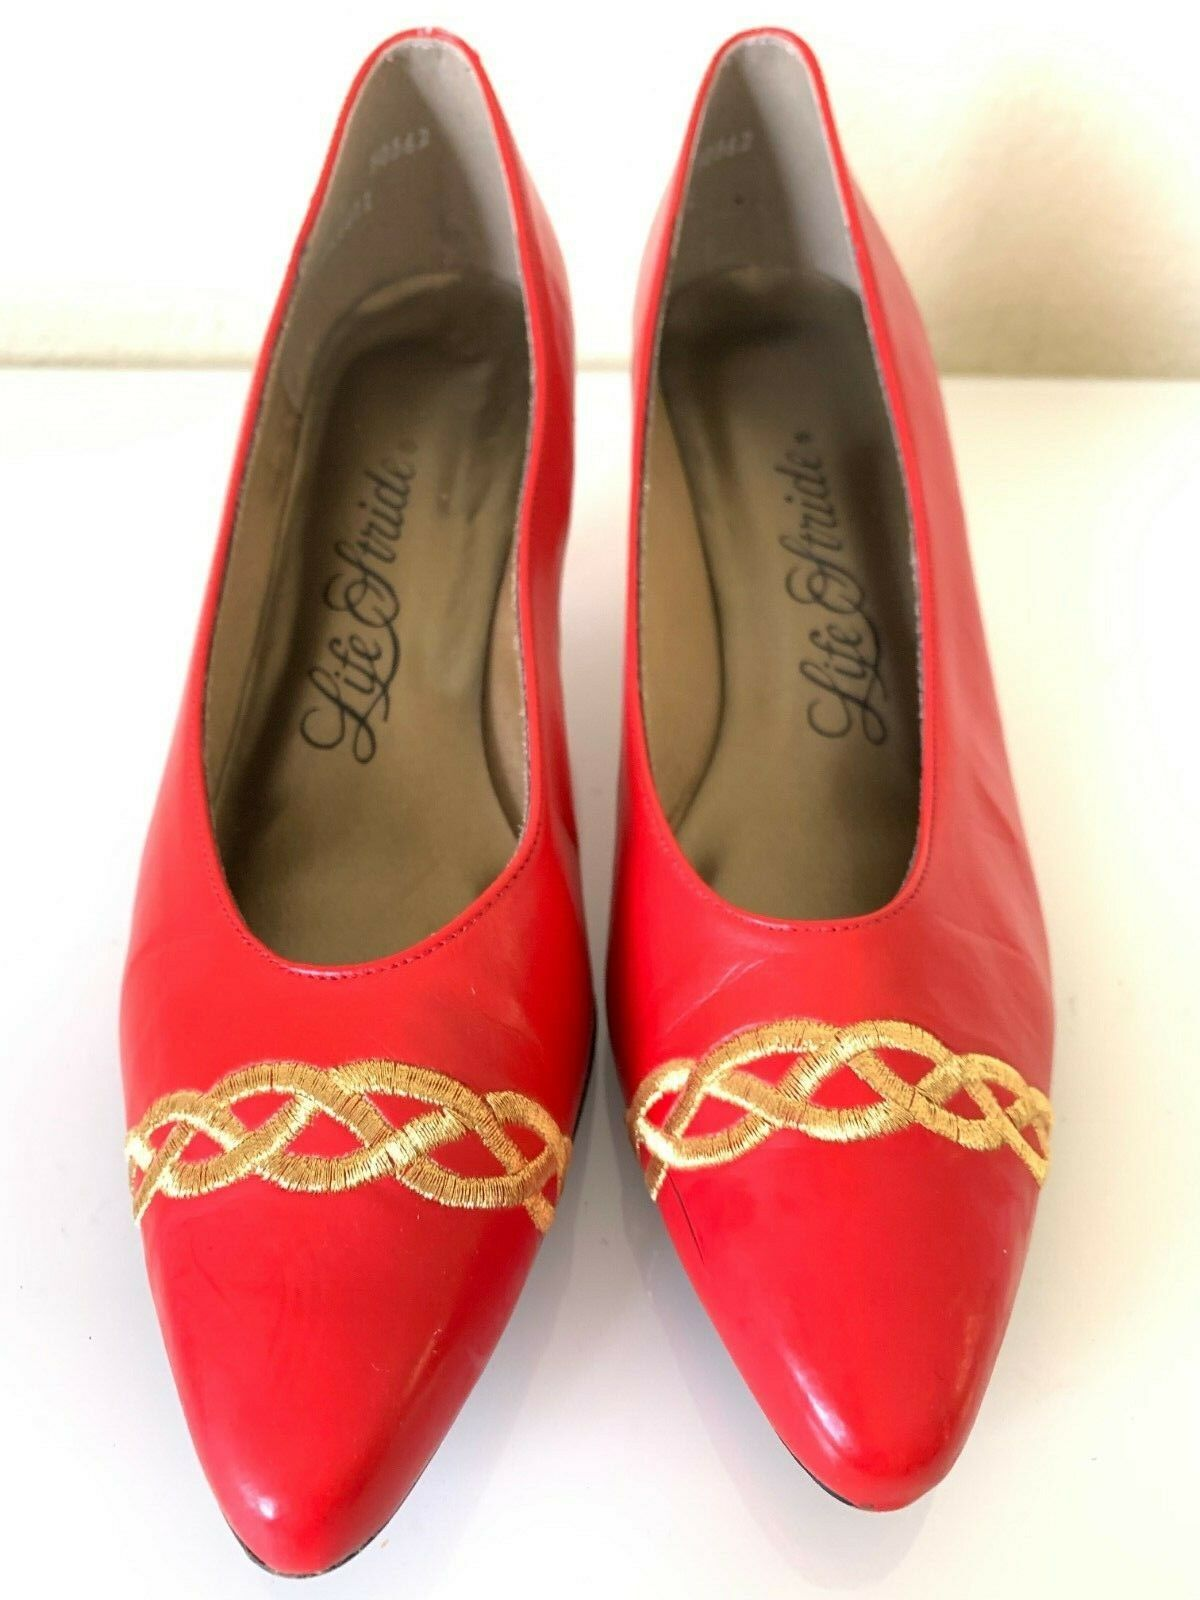 Vintage Red Pumps Pumps Pumps Kitten Heel gold Embroidered Toe Life Stride 8.5 AA-B VGUC 55566c